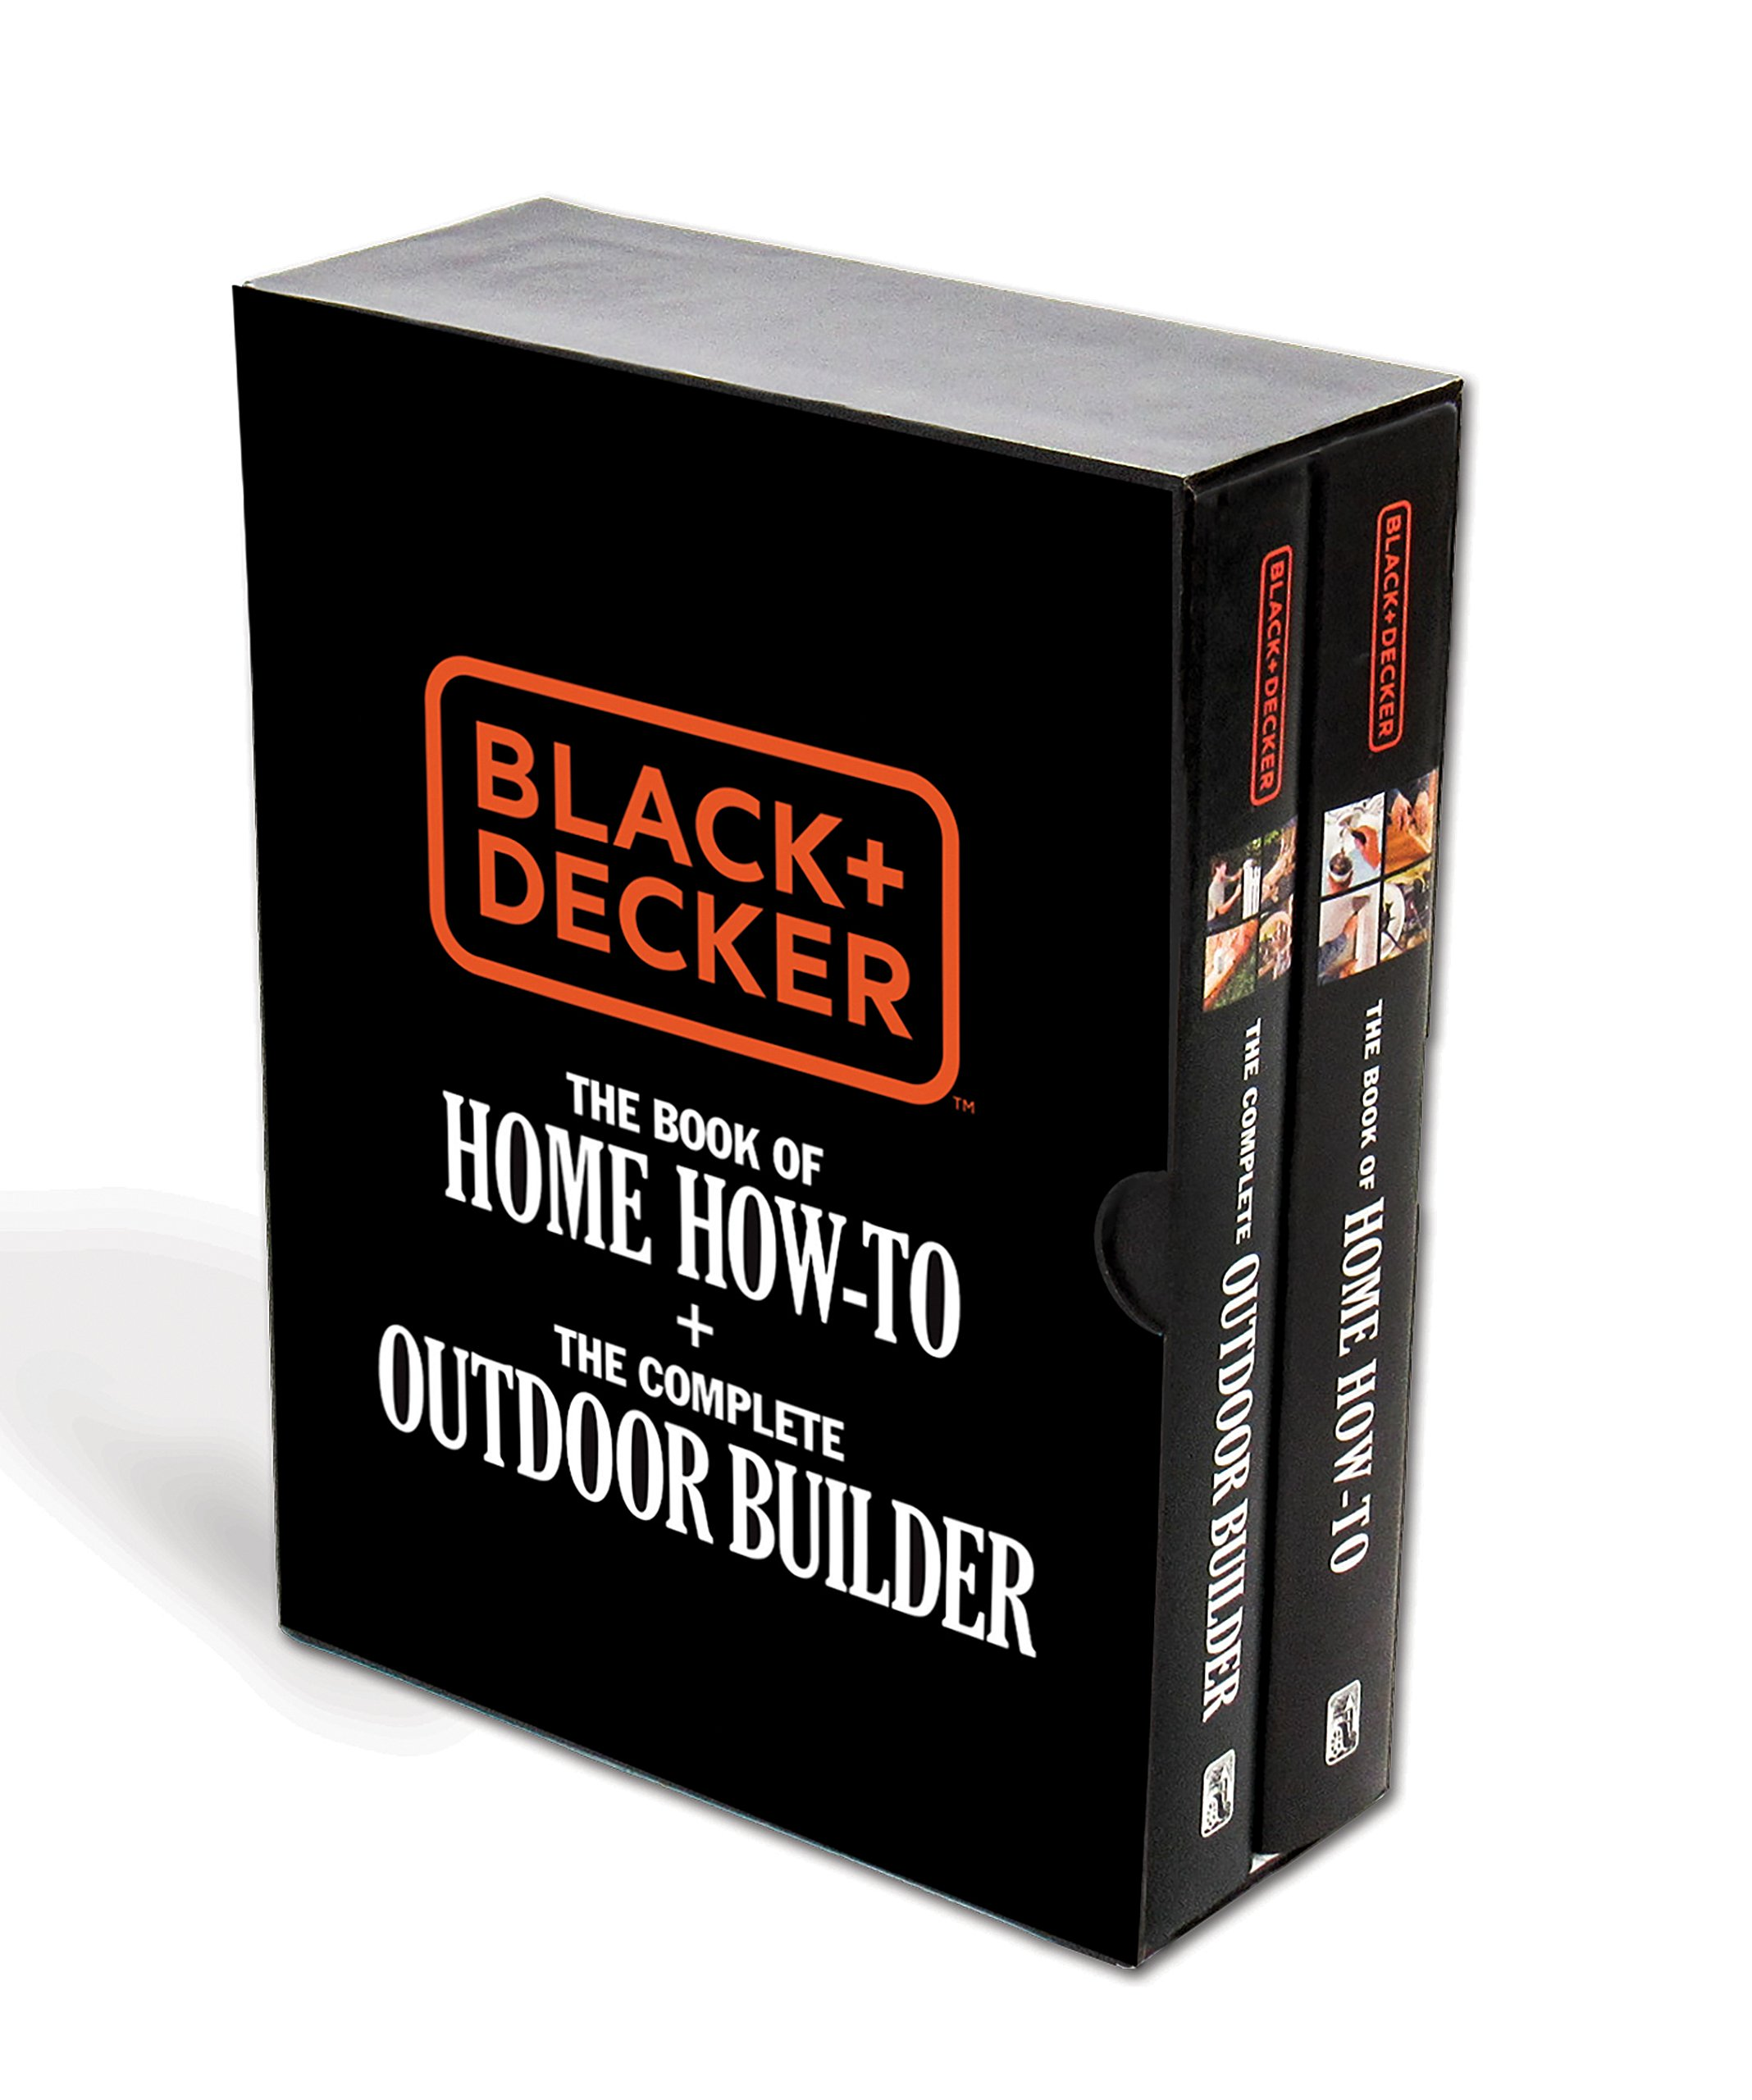 Black & Decker The Book of Home How-To + The Complete Outdoor Builder: The Best DIY Series from the Brand You Trust